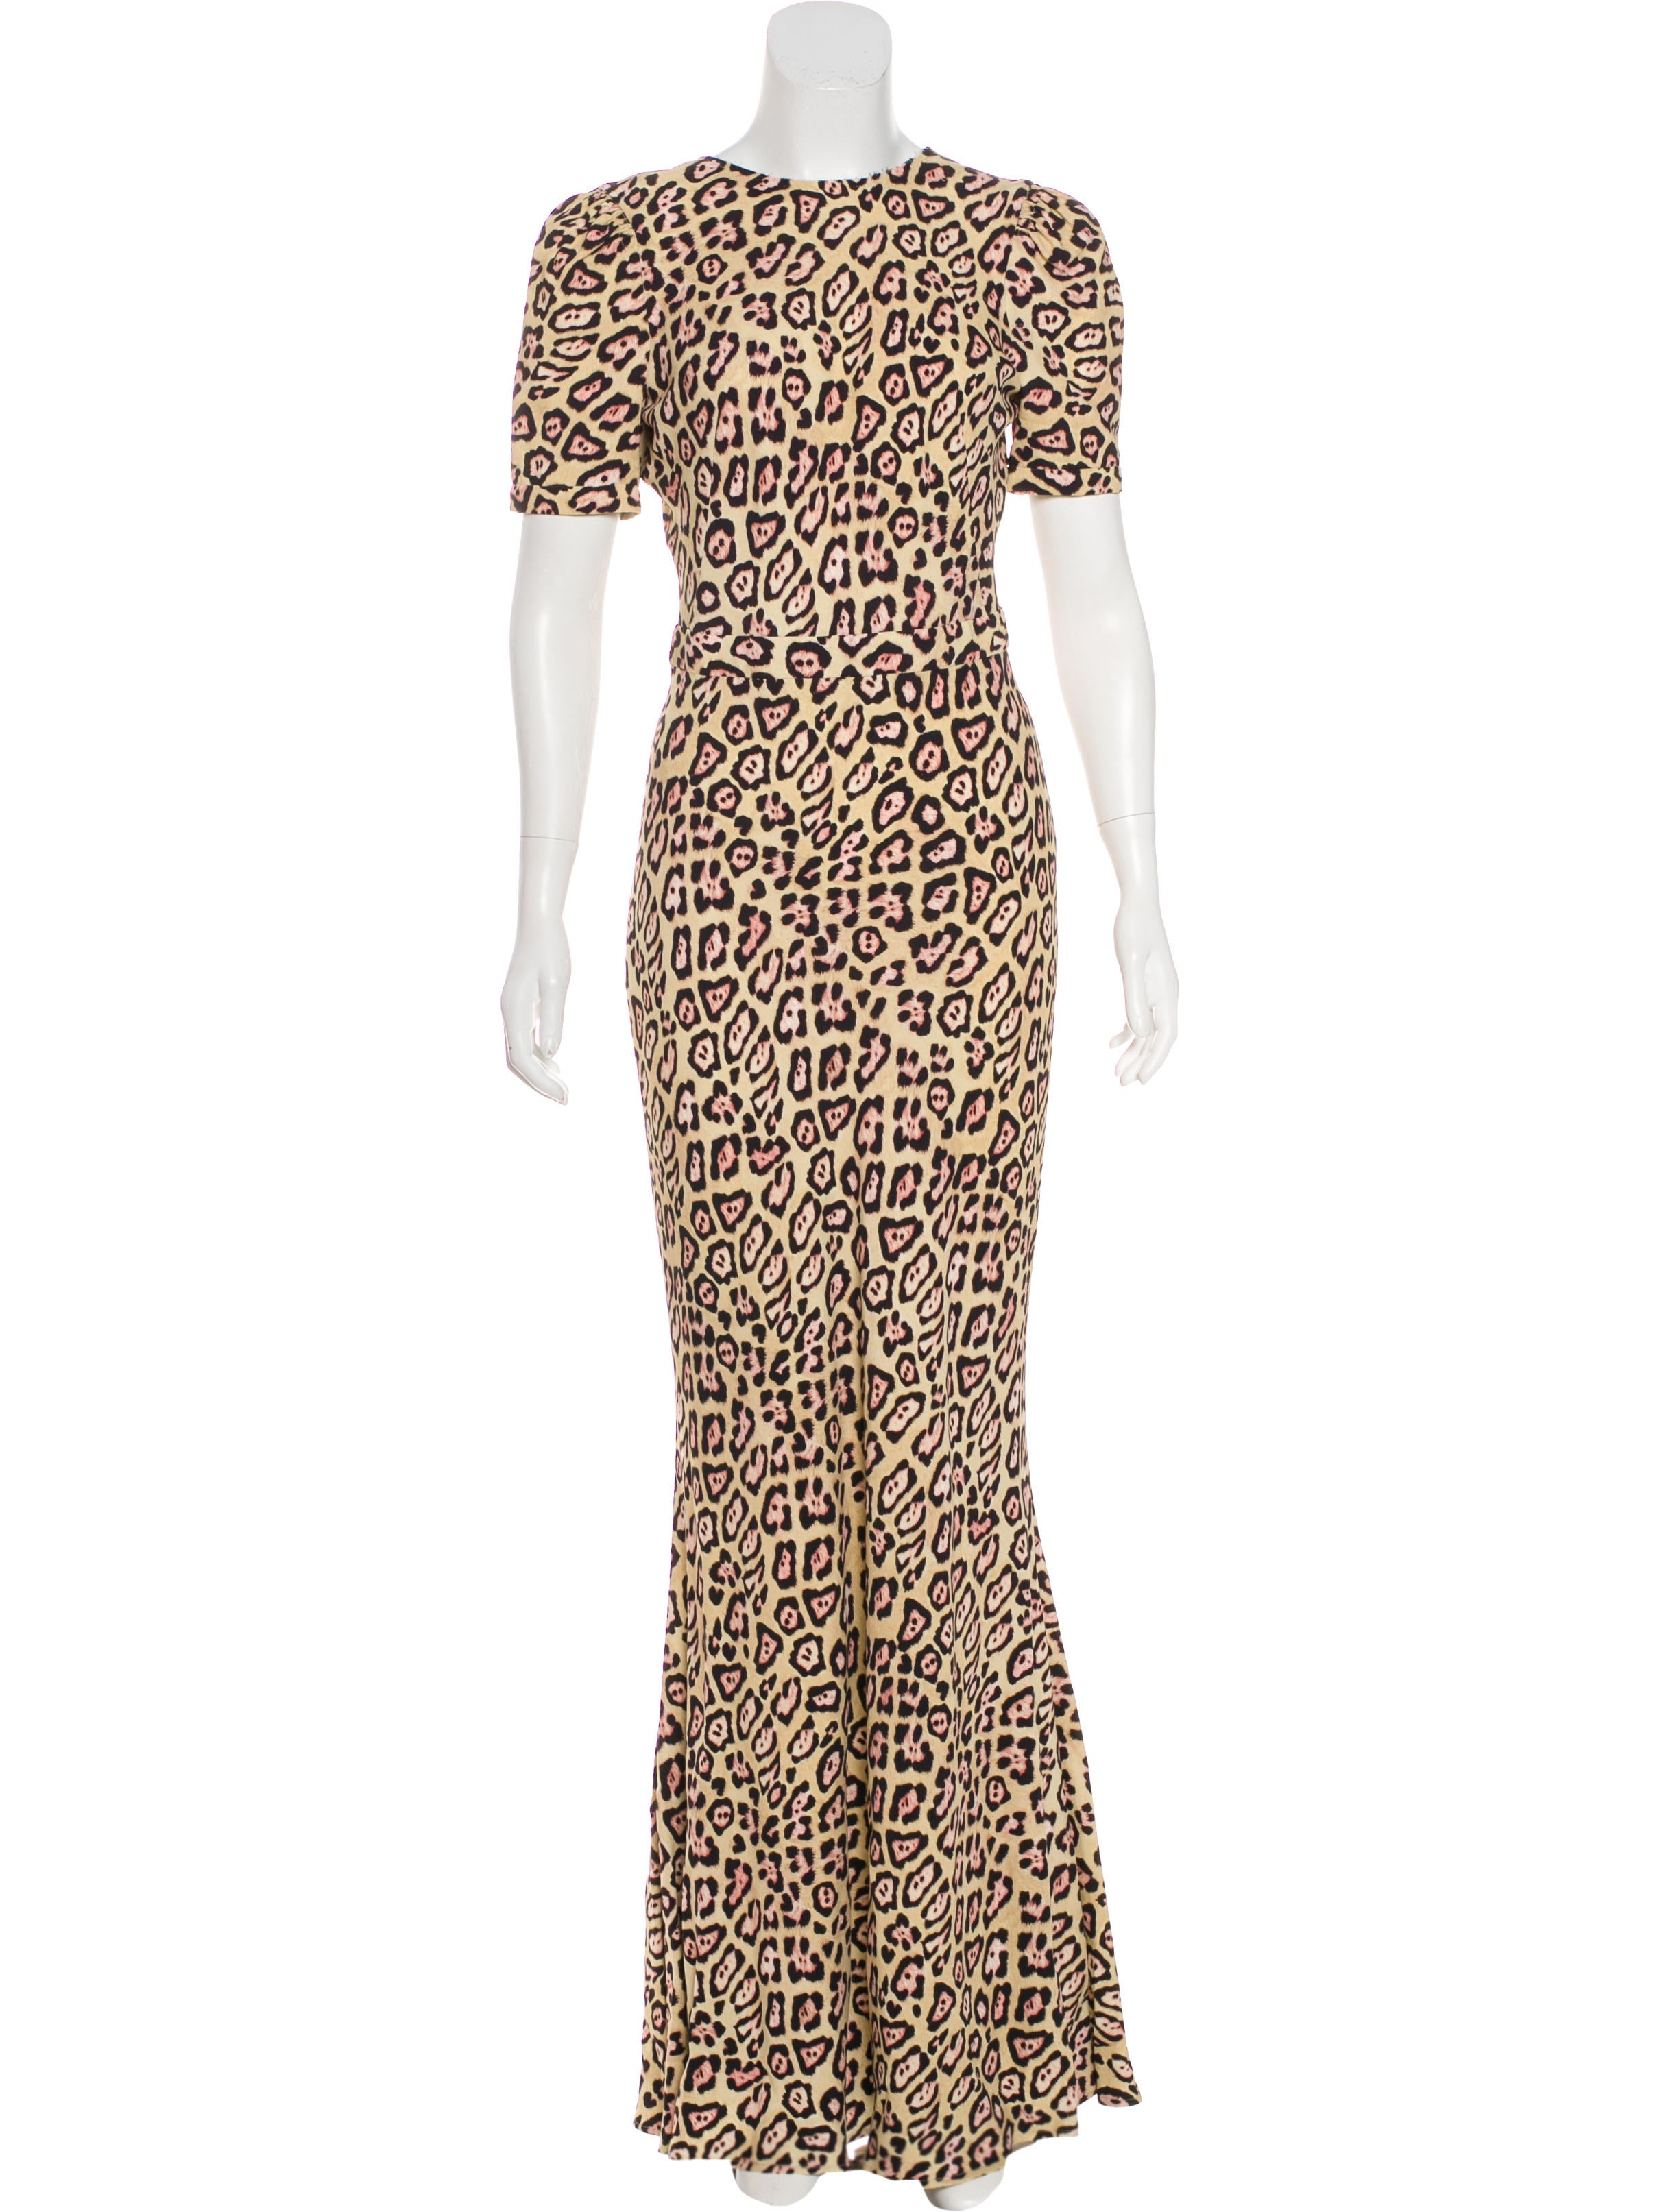 Givenchy 2016 Leopard Print Gown - Clothing - GIV47397 | The RealReal